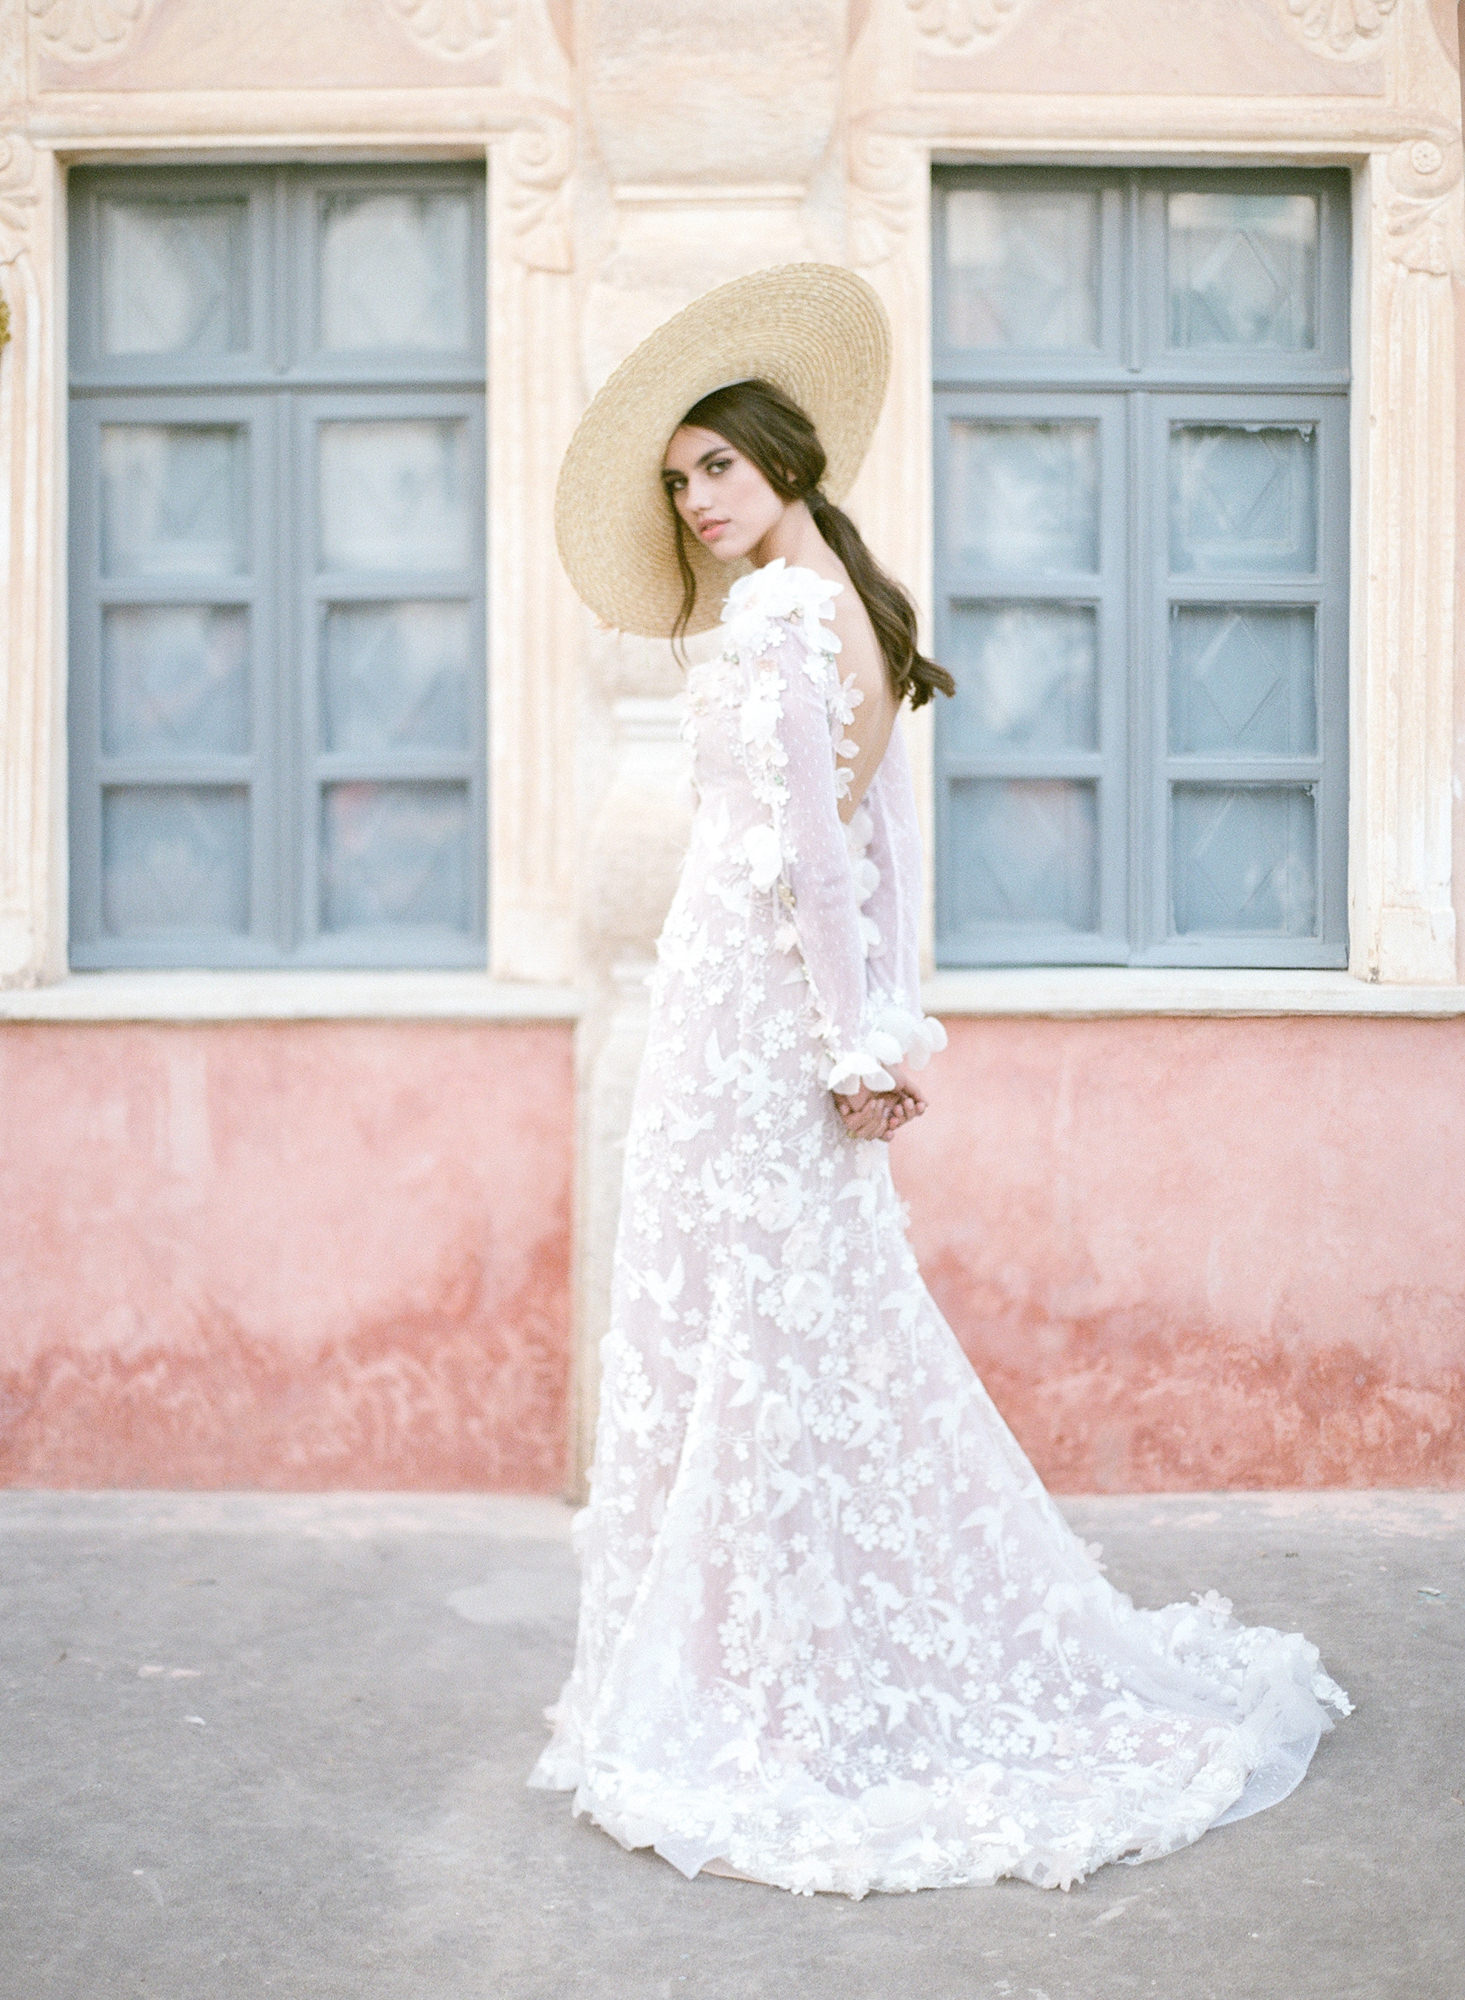 romantic-lace-bridal-gown-backless-long-sleeve-with-straw-hat-worlds-best-wedding-photos-gianluca-adiovaso-italy-wedding-photographers-024.jpg